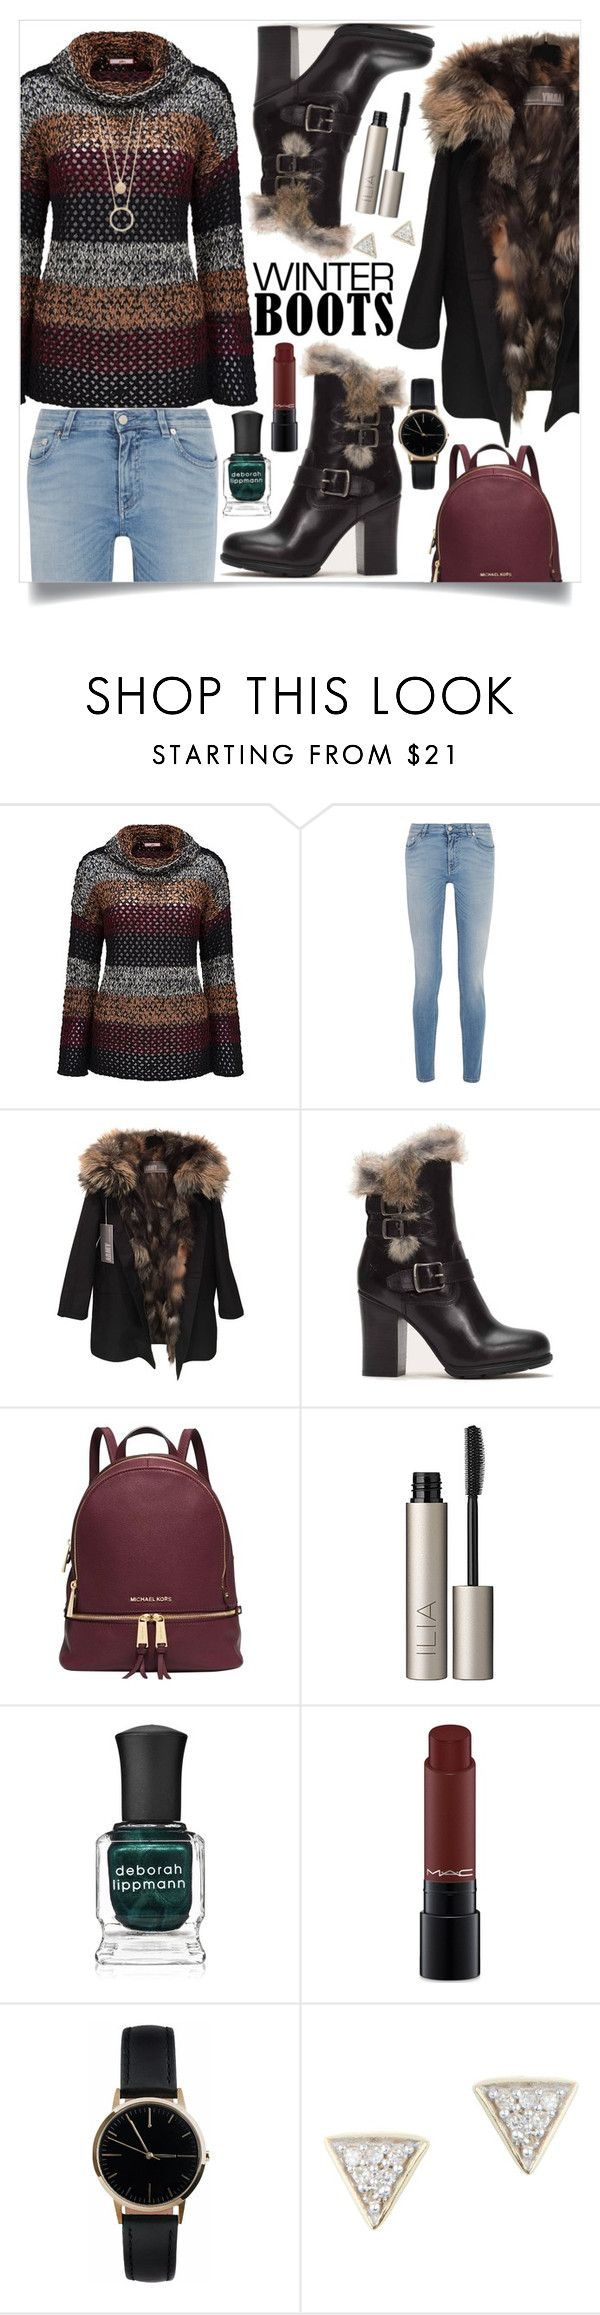 """""""Winter Boots"""" by turtle03 ❤ liked on Polyvore featuring Joe Browns, Givenchy, Yves Salomon, Frye, Michael Kors, Ilia, Deborah Lippmann, MAC Cosmetics, Freedom To Exist and Adina Reyter"""